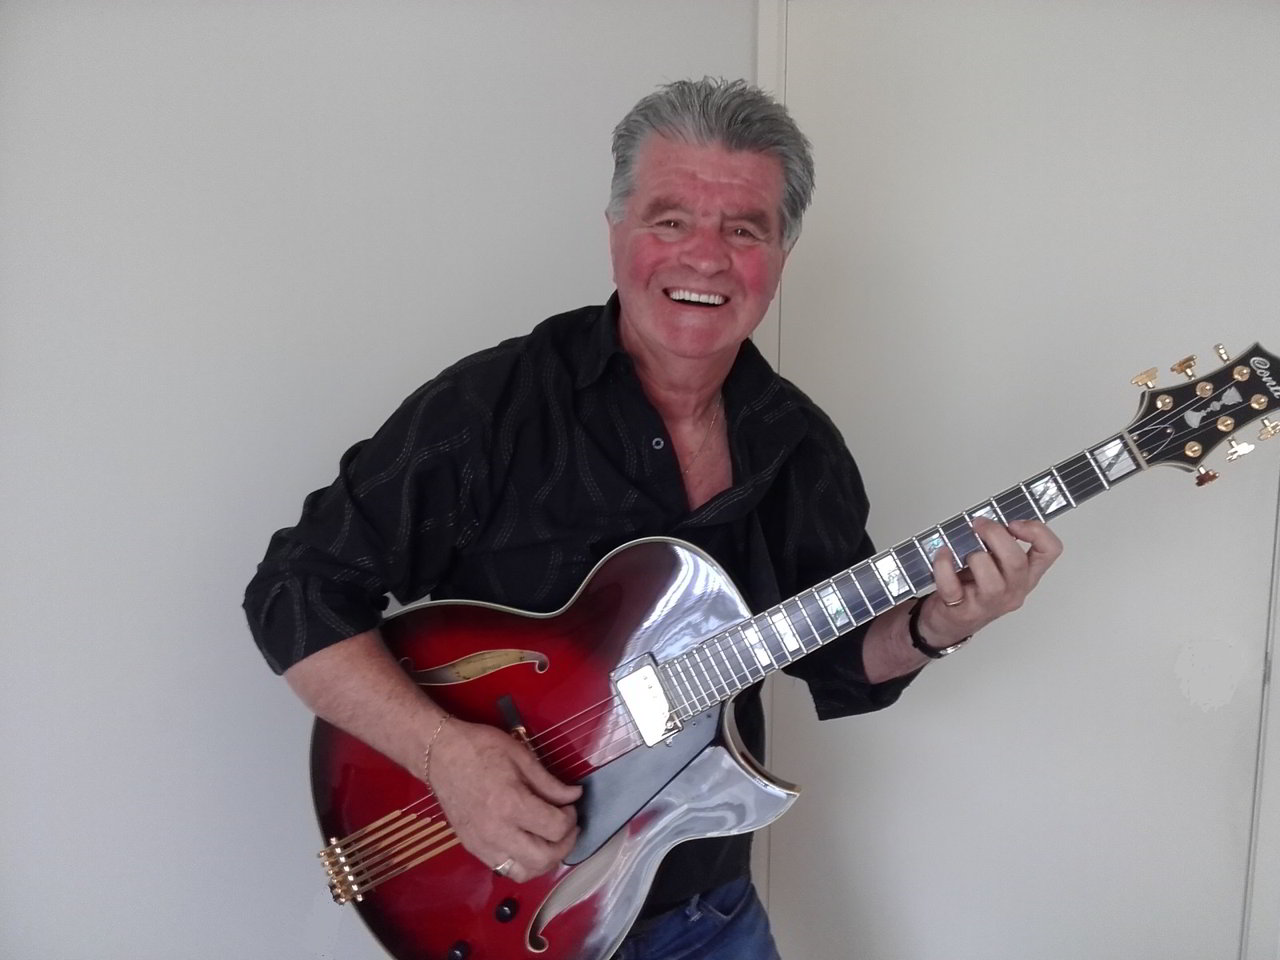 Mike Powell with his Ruby Red Conti Heirloom Archtop Guitar